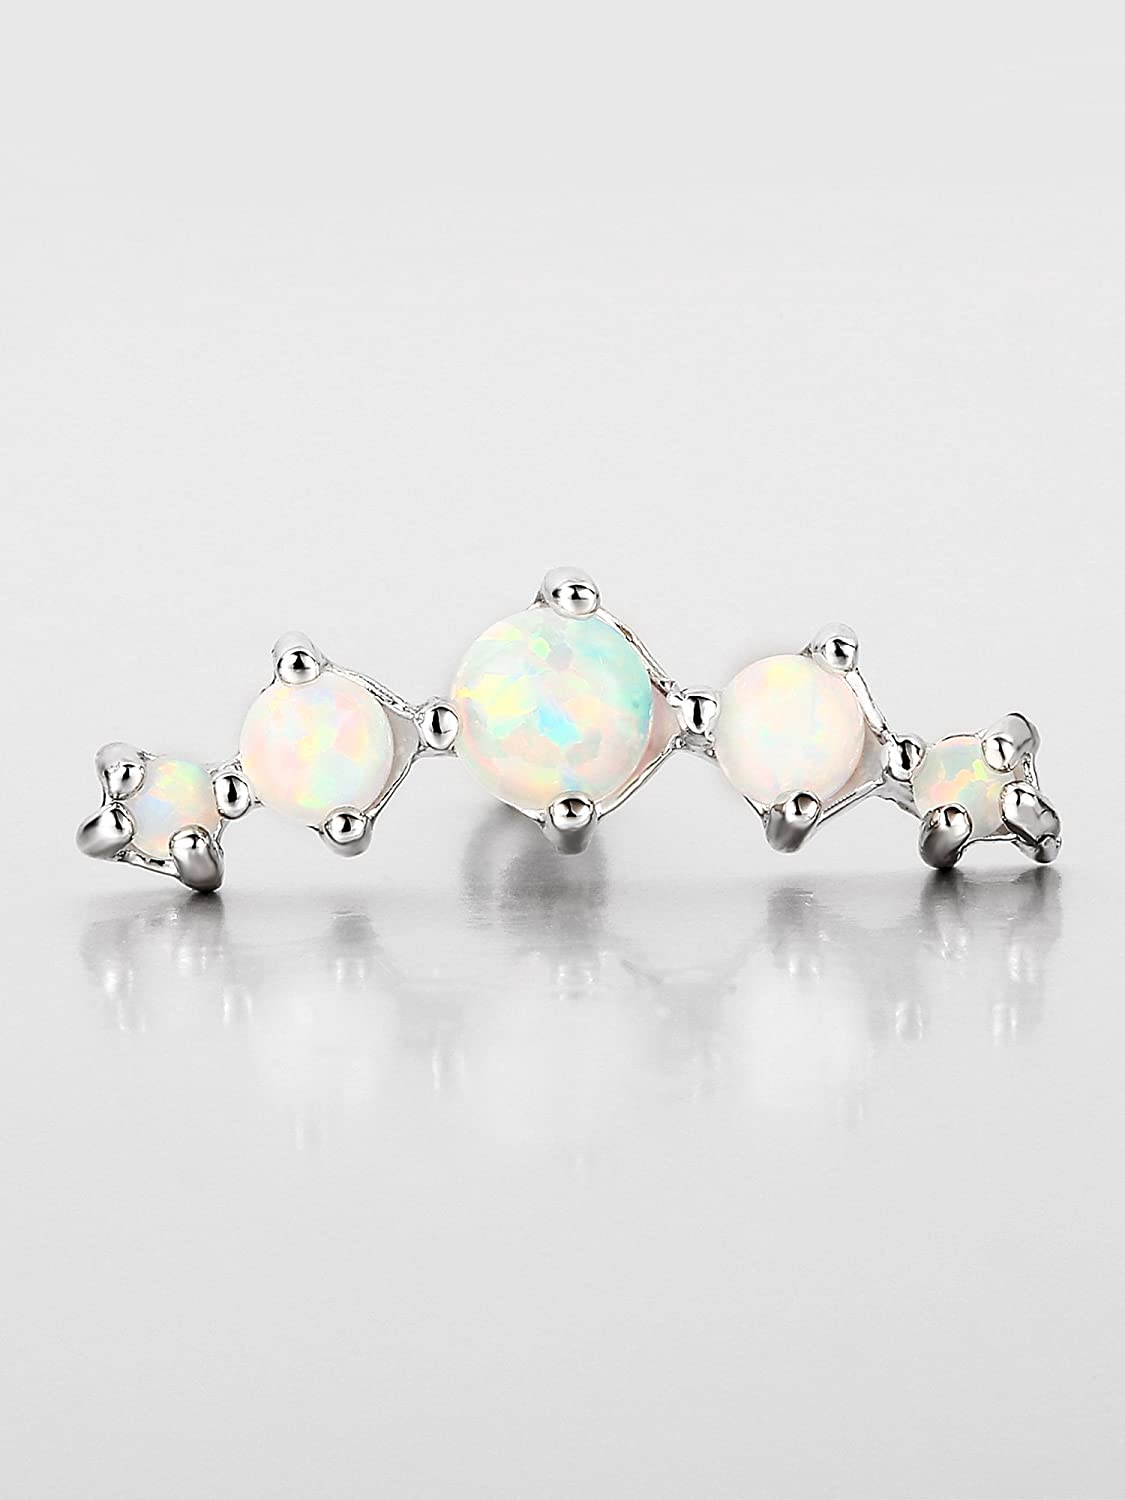 2 Pieces 16 Gauge Surgical Steel Cartilage Stud Curved Synthetic Opal CZ Ear Studs Tragus Helix Earring Piercing for Women Girls